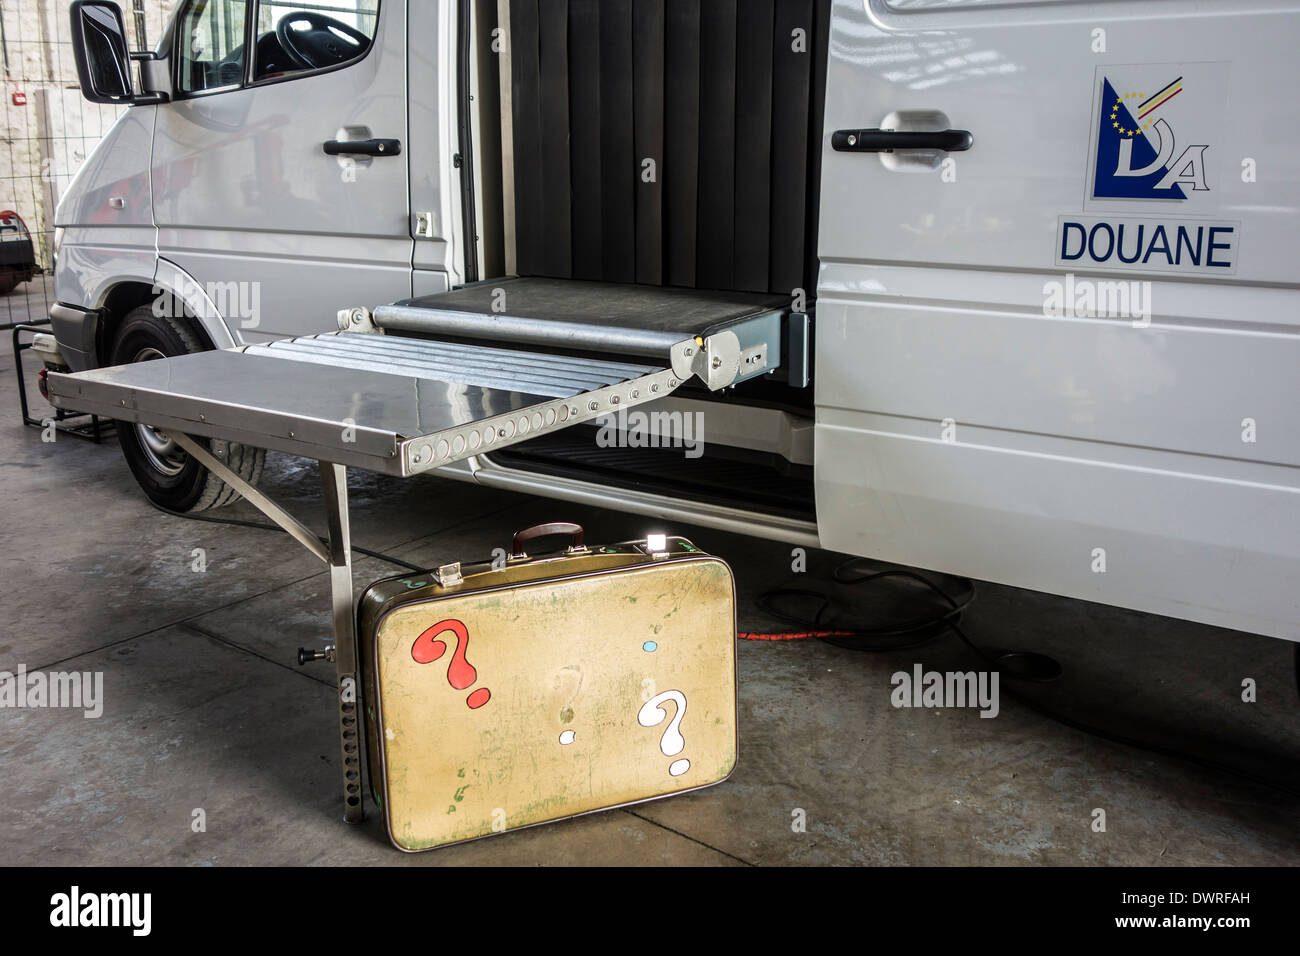 X-Ray baggage scanning vehicle of Belgian customs for detecting weapons, explosives and narcotics in suspicious luggage, Belgium - Stock Image